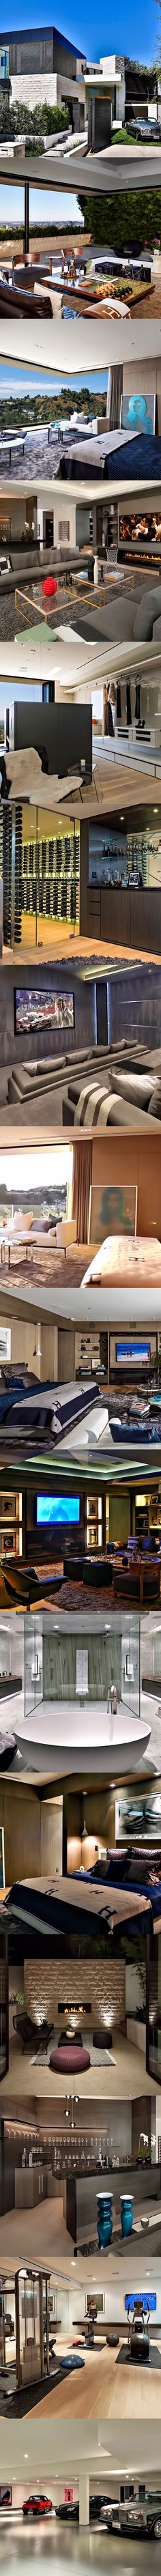 """This stunning modern contemporary luxury residence with sweeping views over the entire L.A. basin is perched on a premier lot in the celebrity studded """"Bird Streets"""" overlooking the sunset strip on Oriole Way. This brand new estate was architected to deliver the ultimate California lifestyle with meticulously clean lines and wide-open spaces throughout. Walls of […]"""